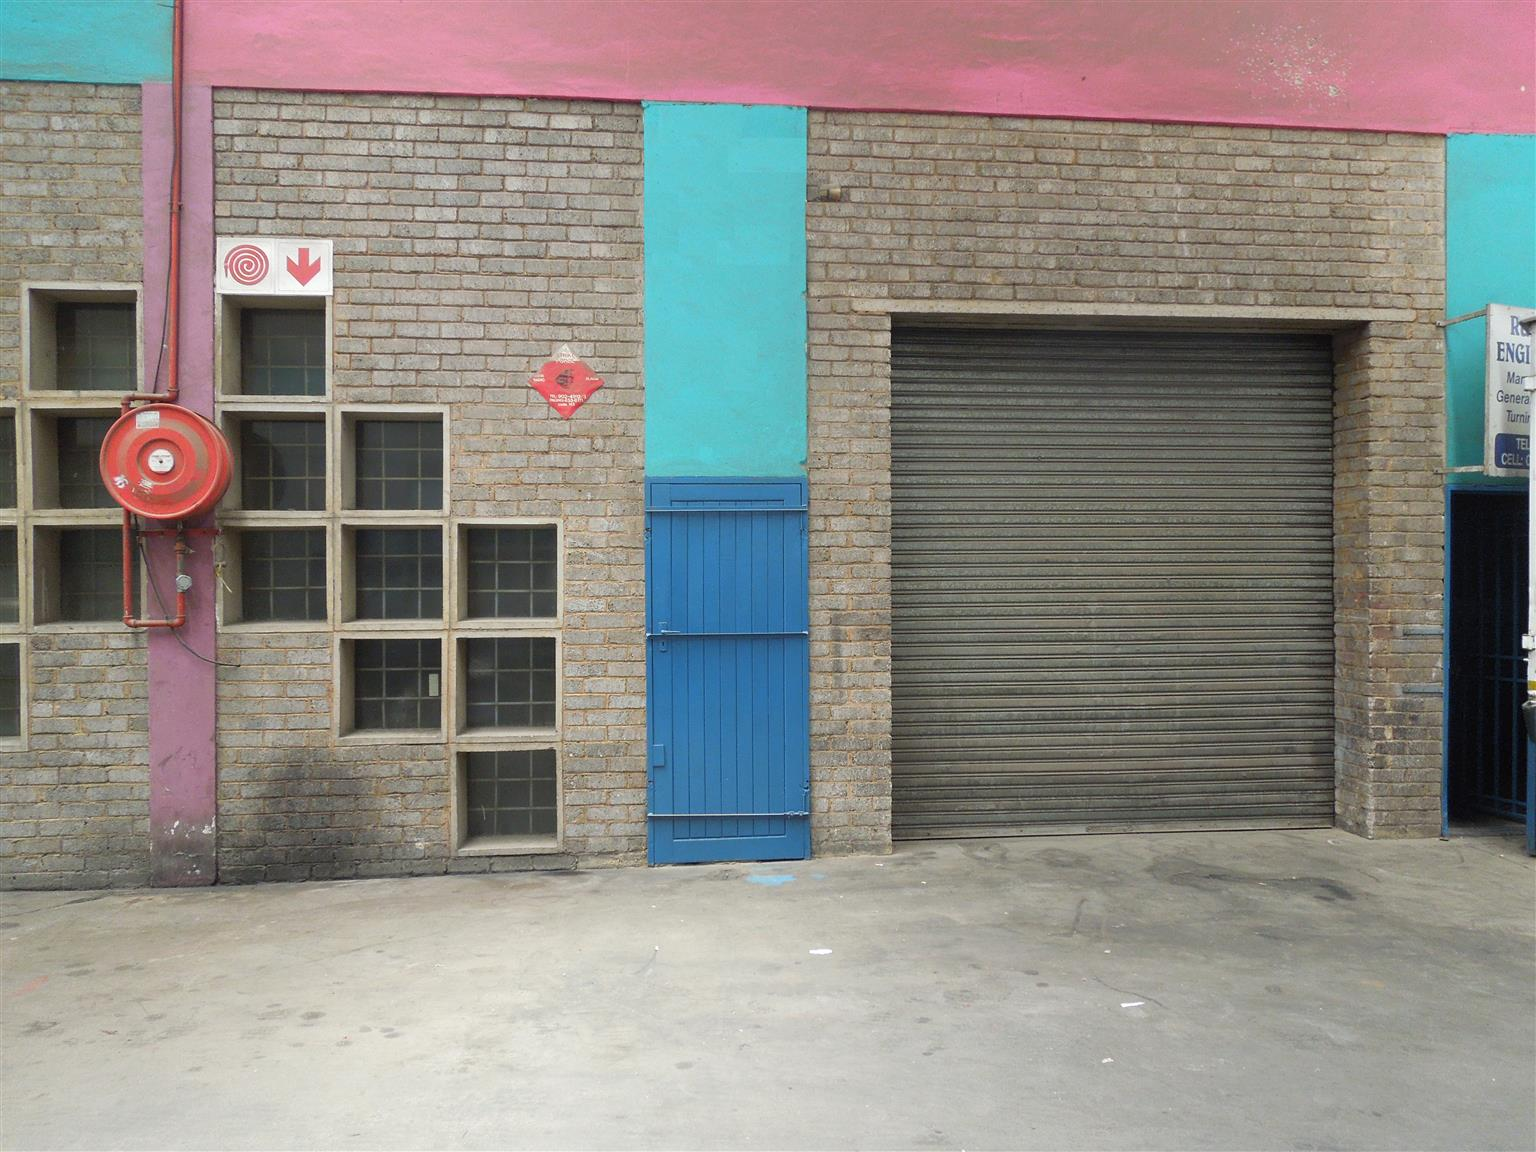 67m² Factory/Warehouse to let in the heart of Heriotdale.